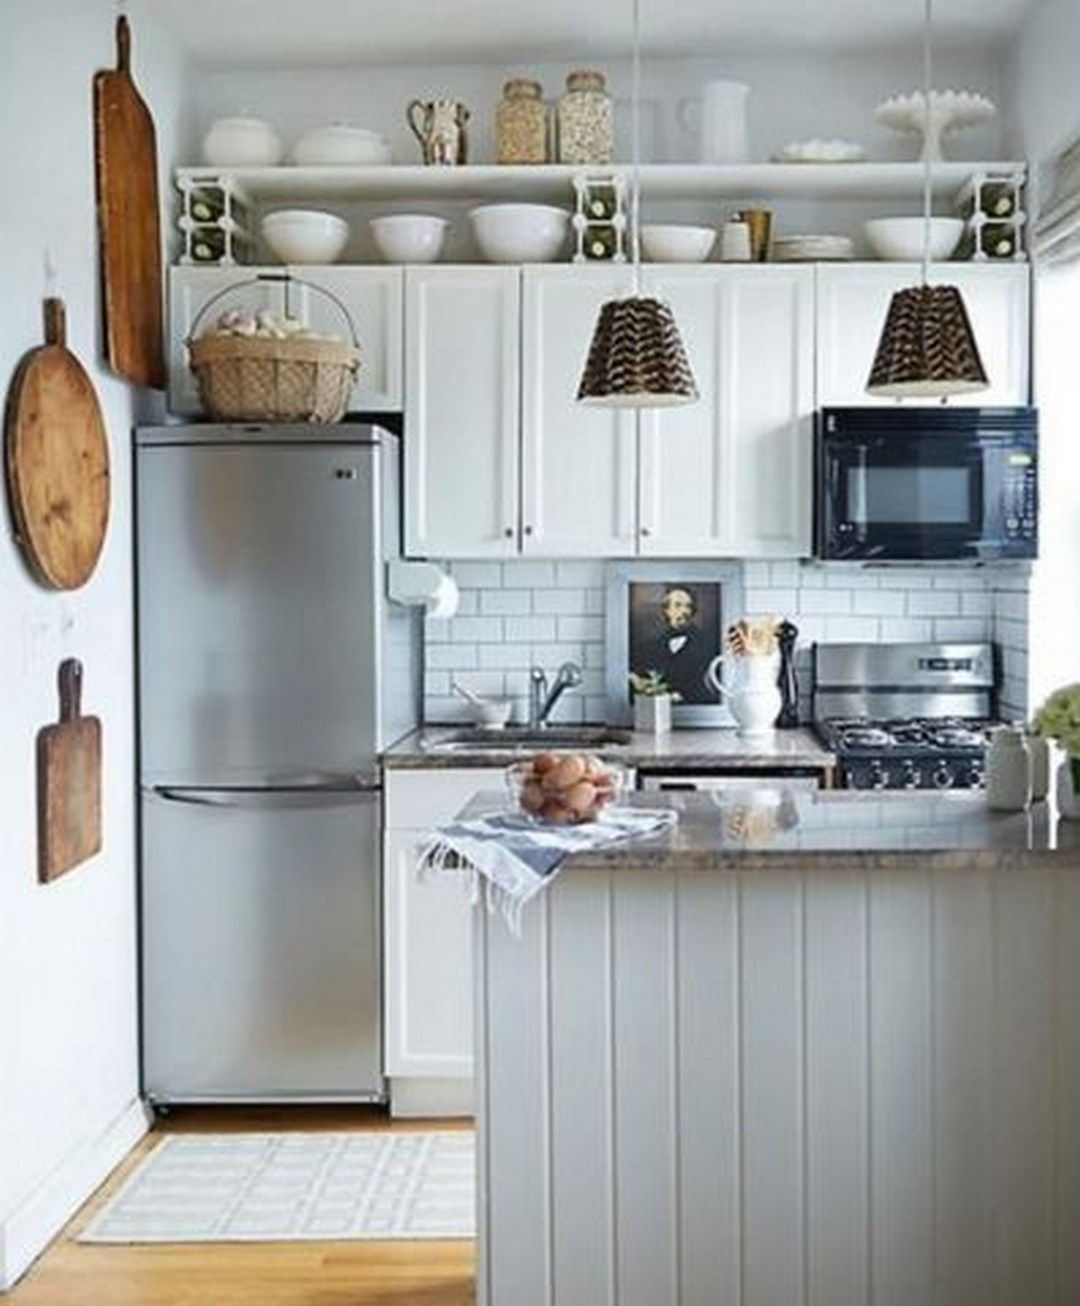 99 Inspiration For Your Own Tiny House With Small Kitchen Space ...